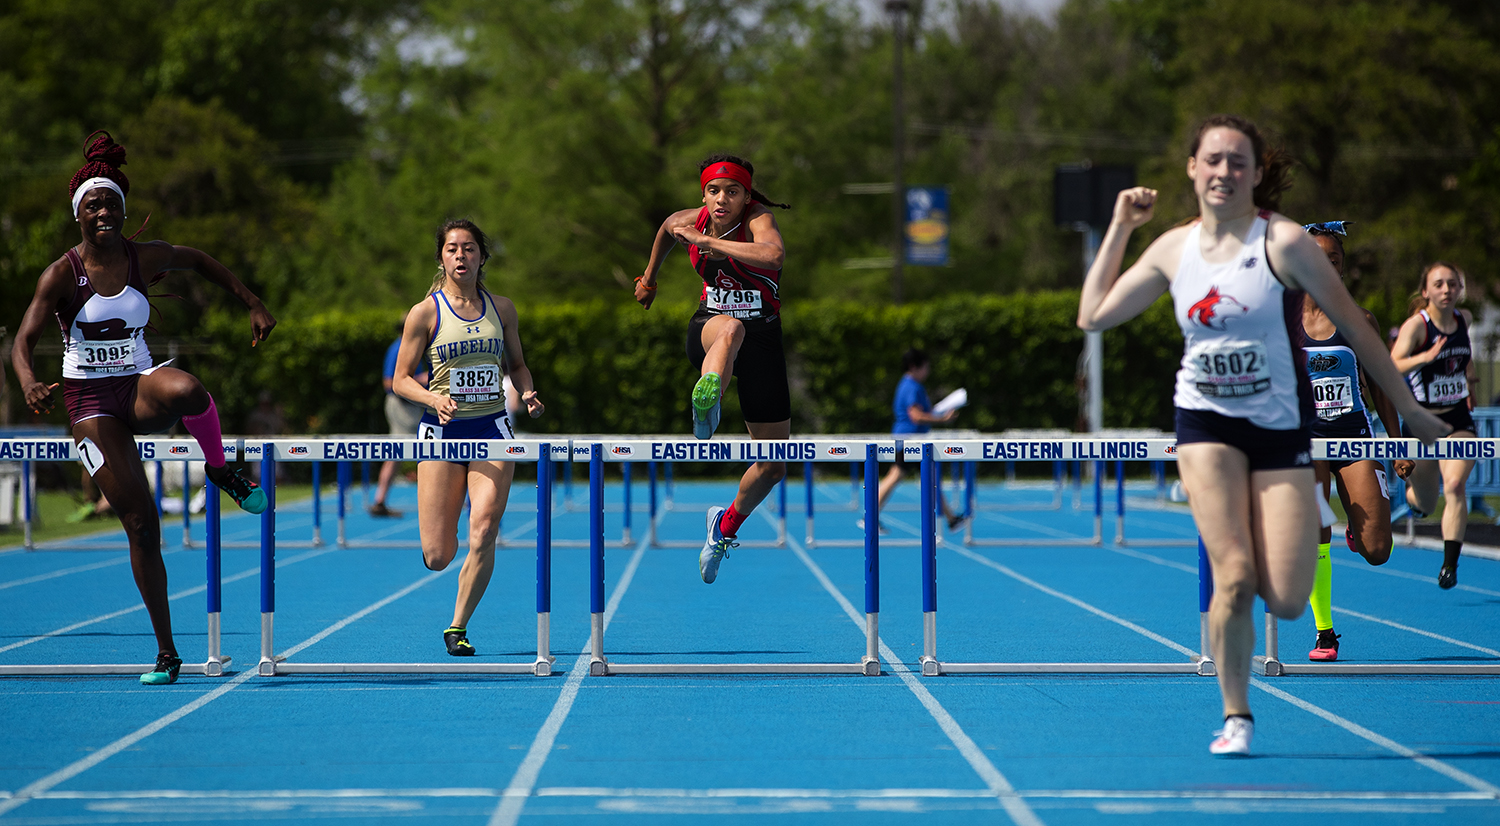 Springfield's Lauren Ferguson clears the last hurdle on her way to a third place finish in the Class 3A 300 meter hurdles at the IHSA Track and Field State Finals at O'Brien Field in Charleston, Ill., Saturday, May 19, 2018.  [Ted Schurter/The State Journal-Register]